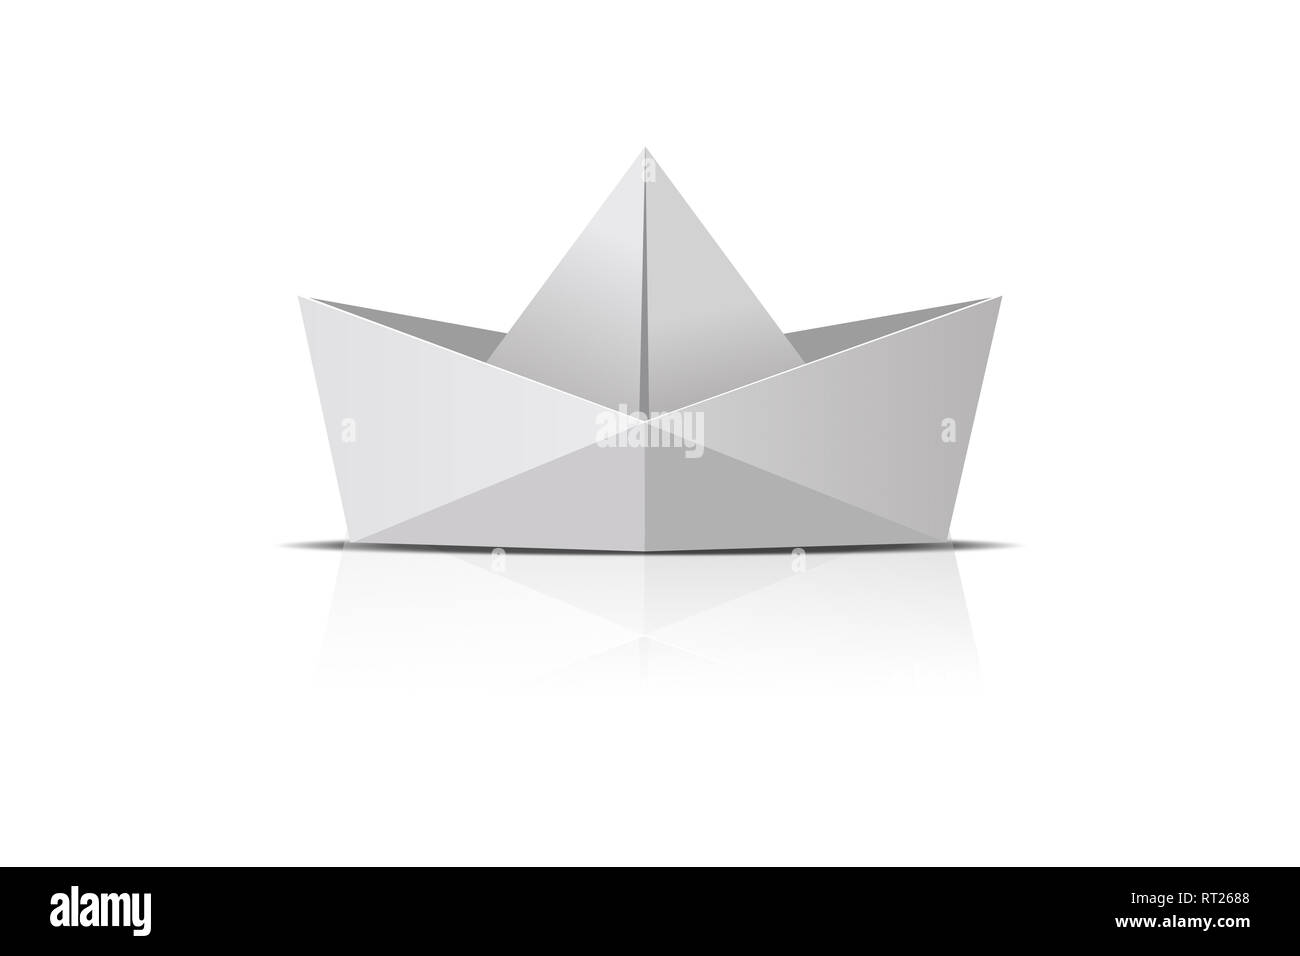 Folder paper ship boat origami, isolated on white background. - Stock Image